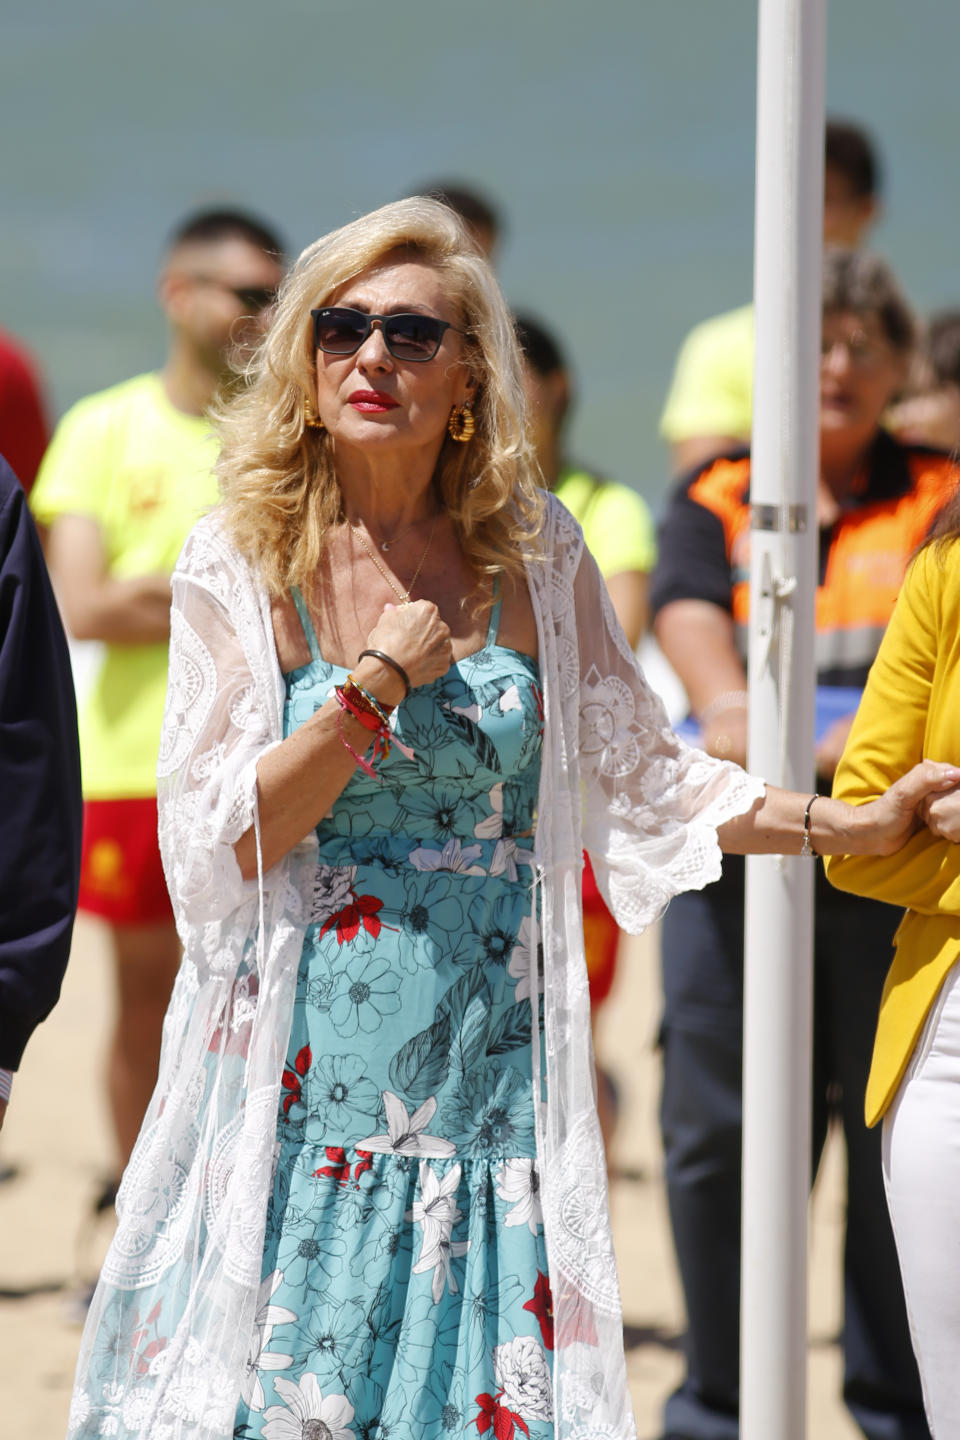 CHIPIONA, SPAIN - JUNE 14: Rosa Benito attends the beach season opening on June 14, 2019 in Chipiona, Spain. (Photo by Europa Press Entertainment/Europa Press via Getty Images)